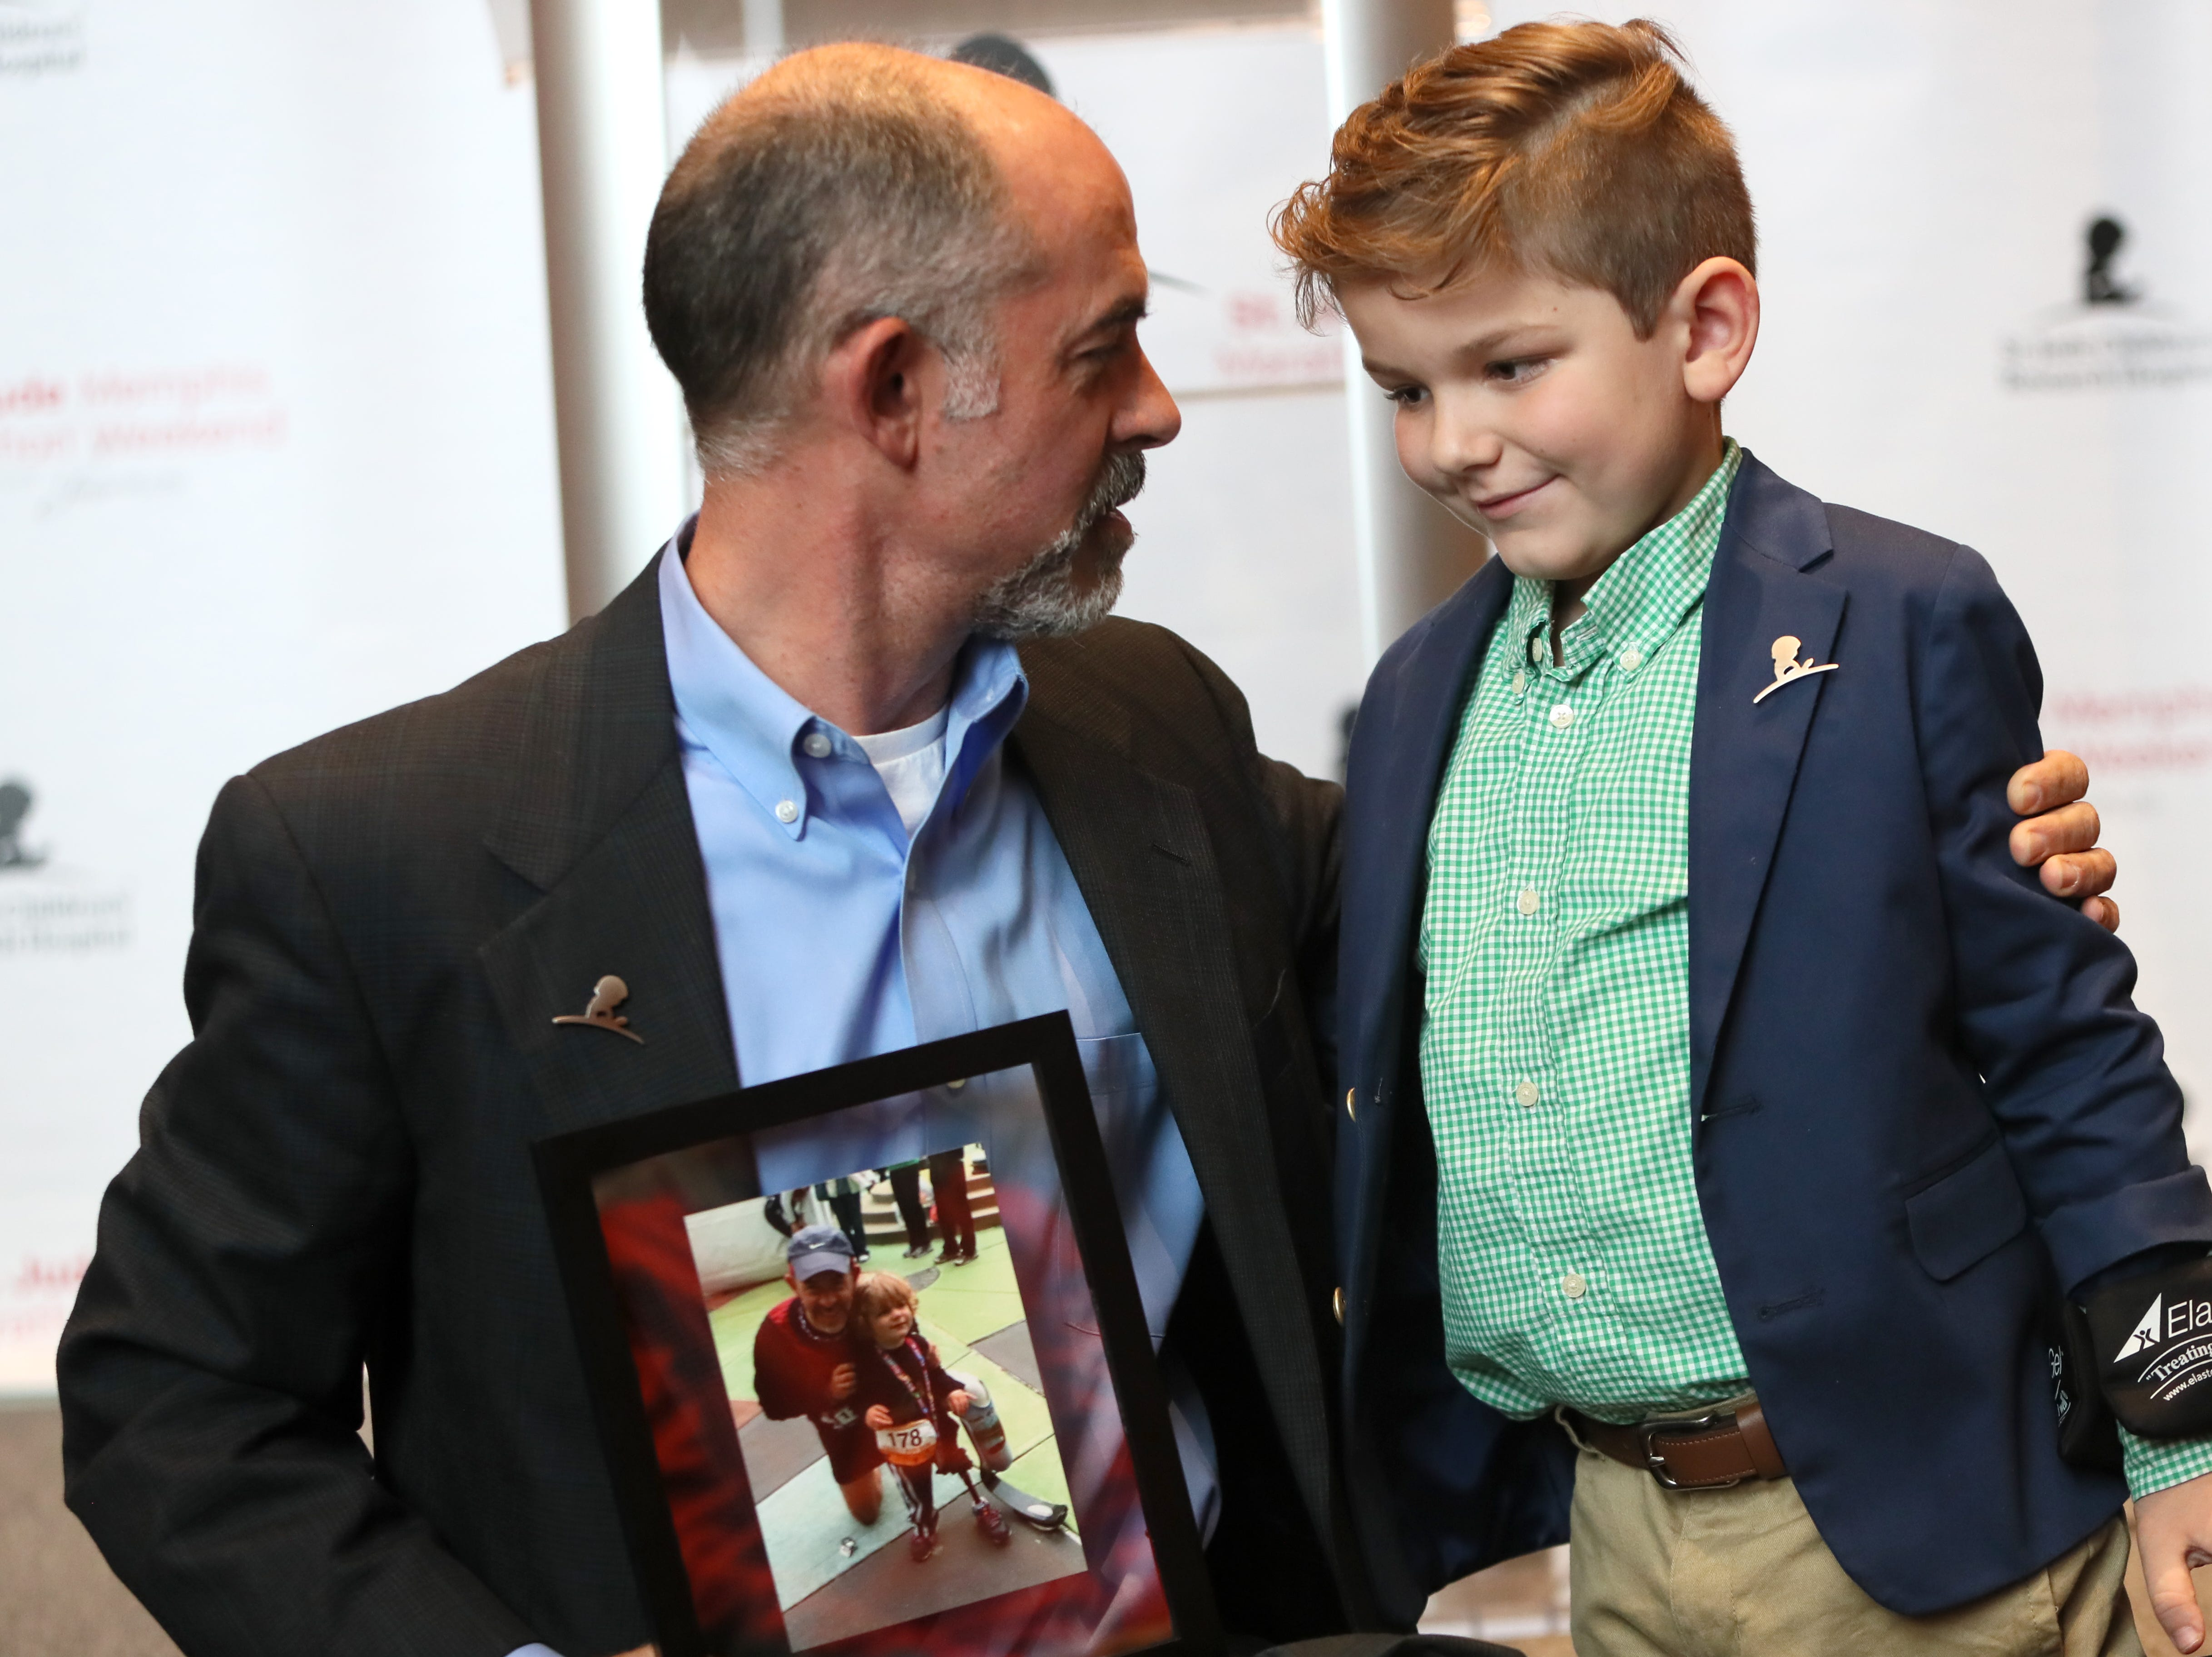 St. Jude Hero Among Us award recipient Kent Stoneking embraces Kael Hill, 6, during a press conference at the Cook Convention Center Thursday, Nov. 29, 2018.